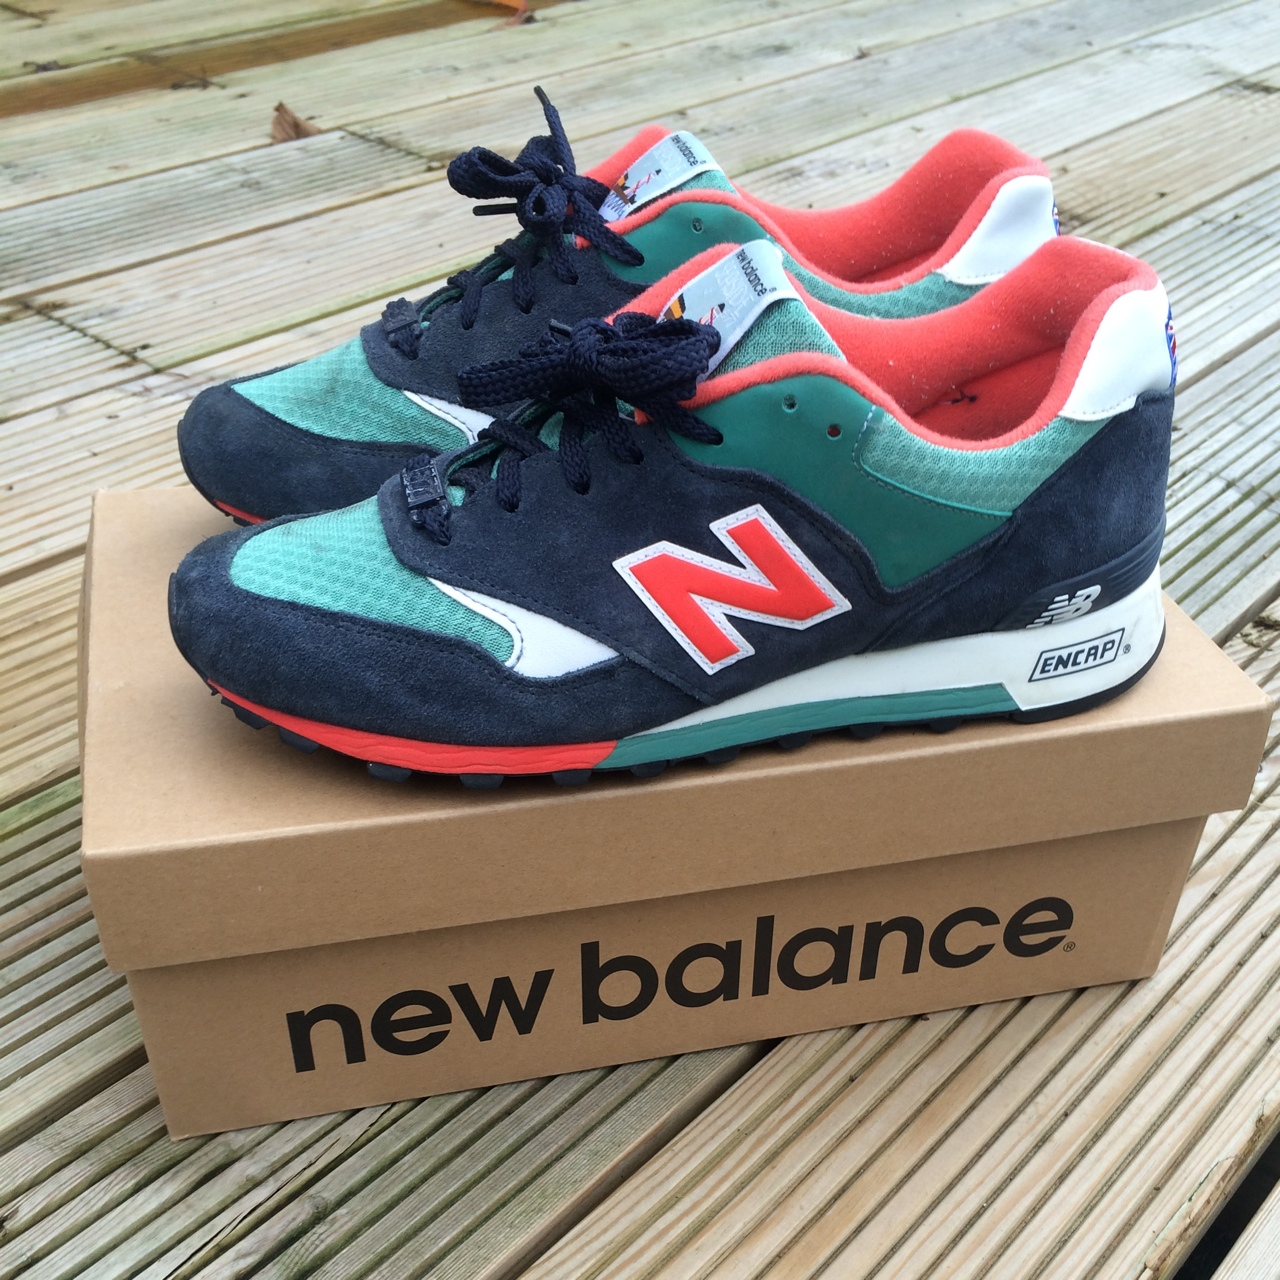 New Balance 577 'Seaside Pack' Made In